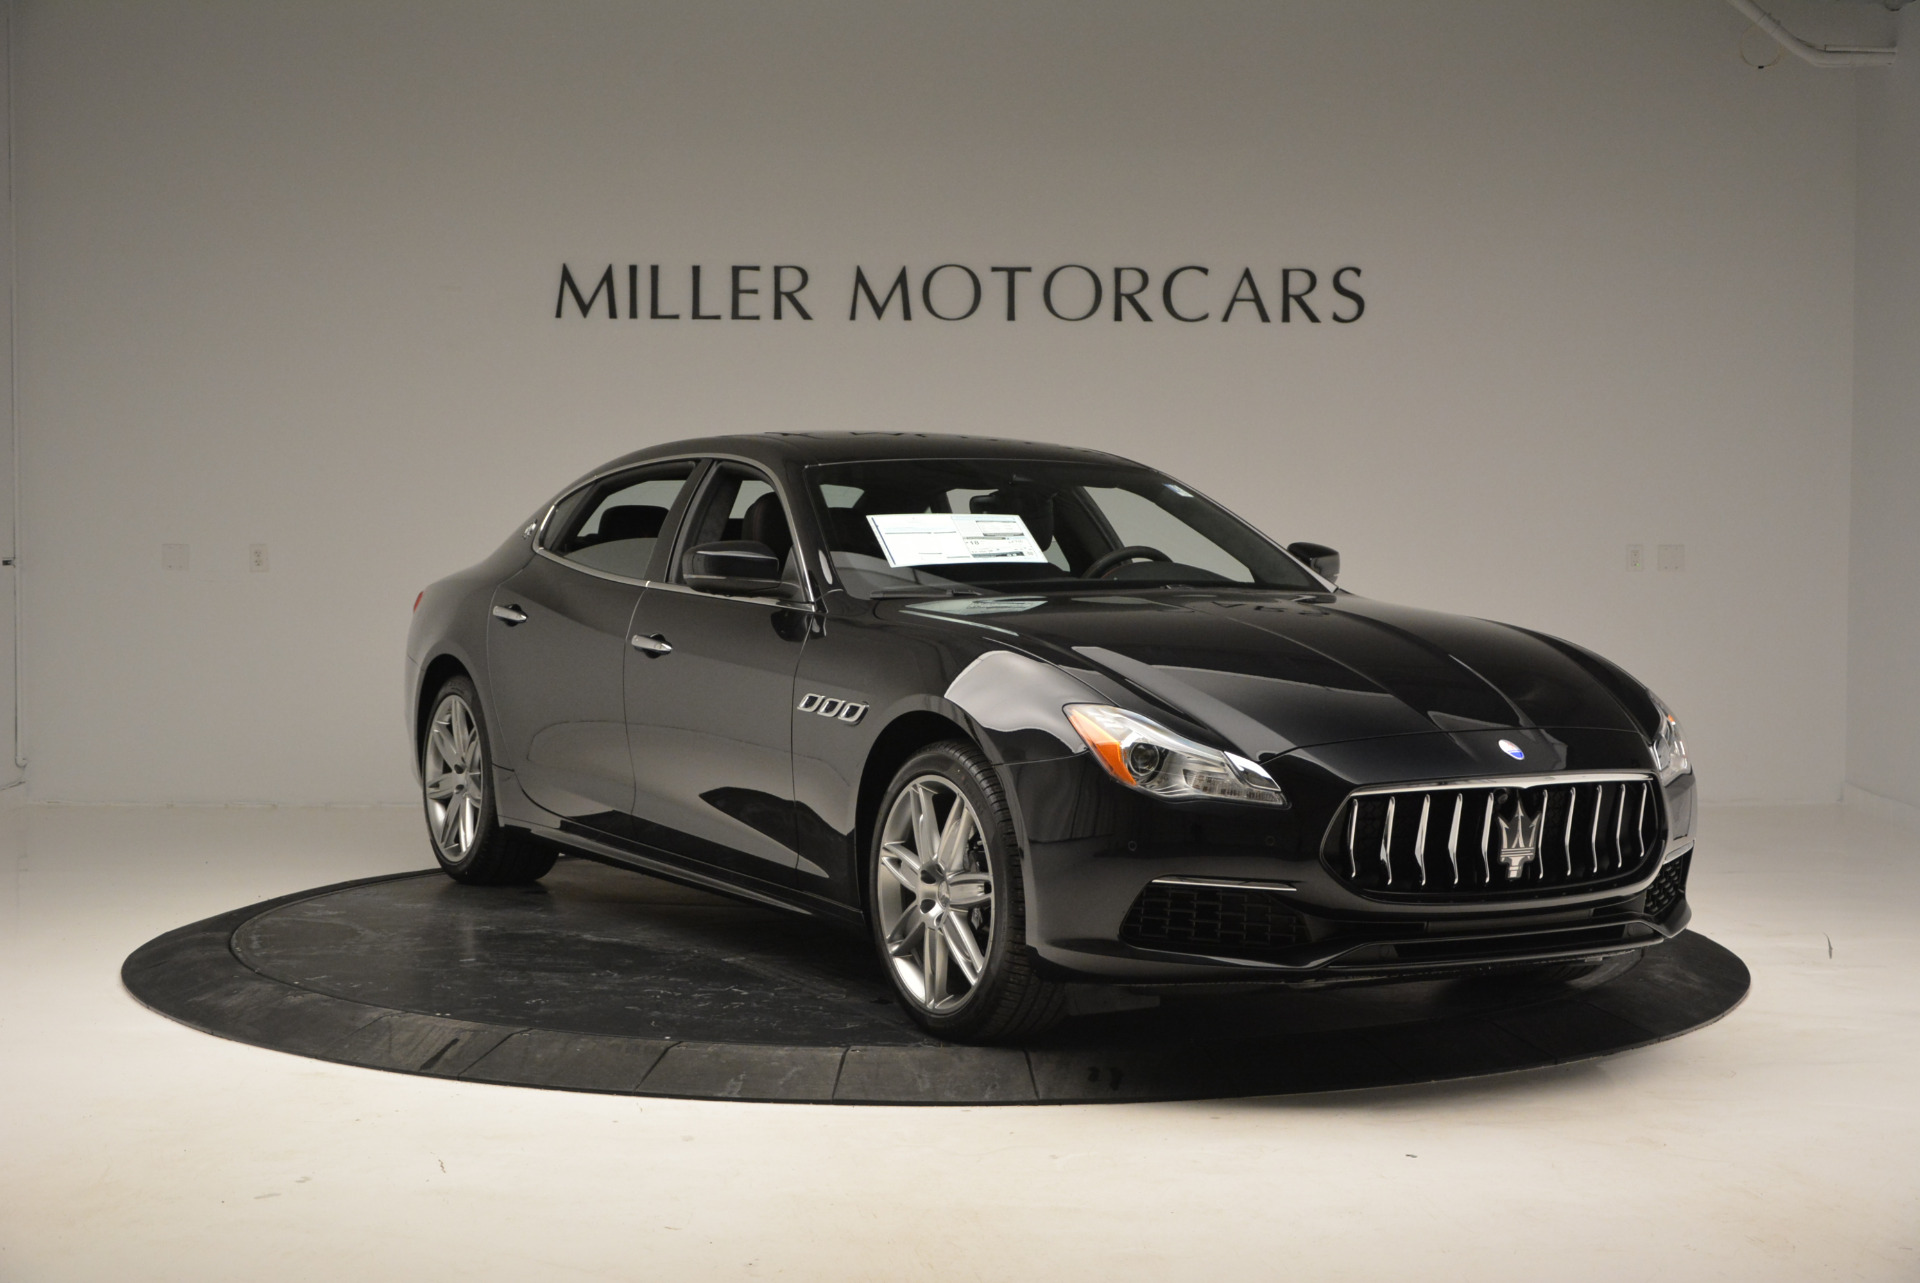 New 2017 Maserati Quattroporte S Q4 GranLusso For Sale In Greenwich, CT 793_p11